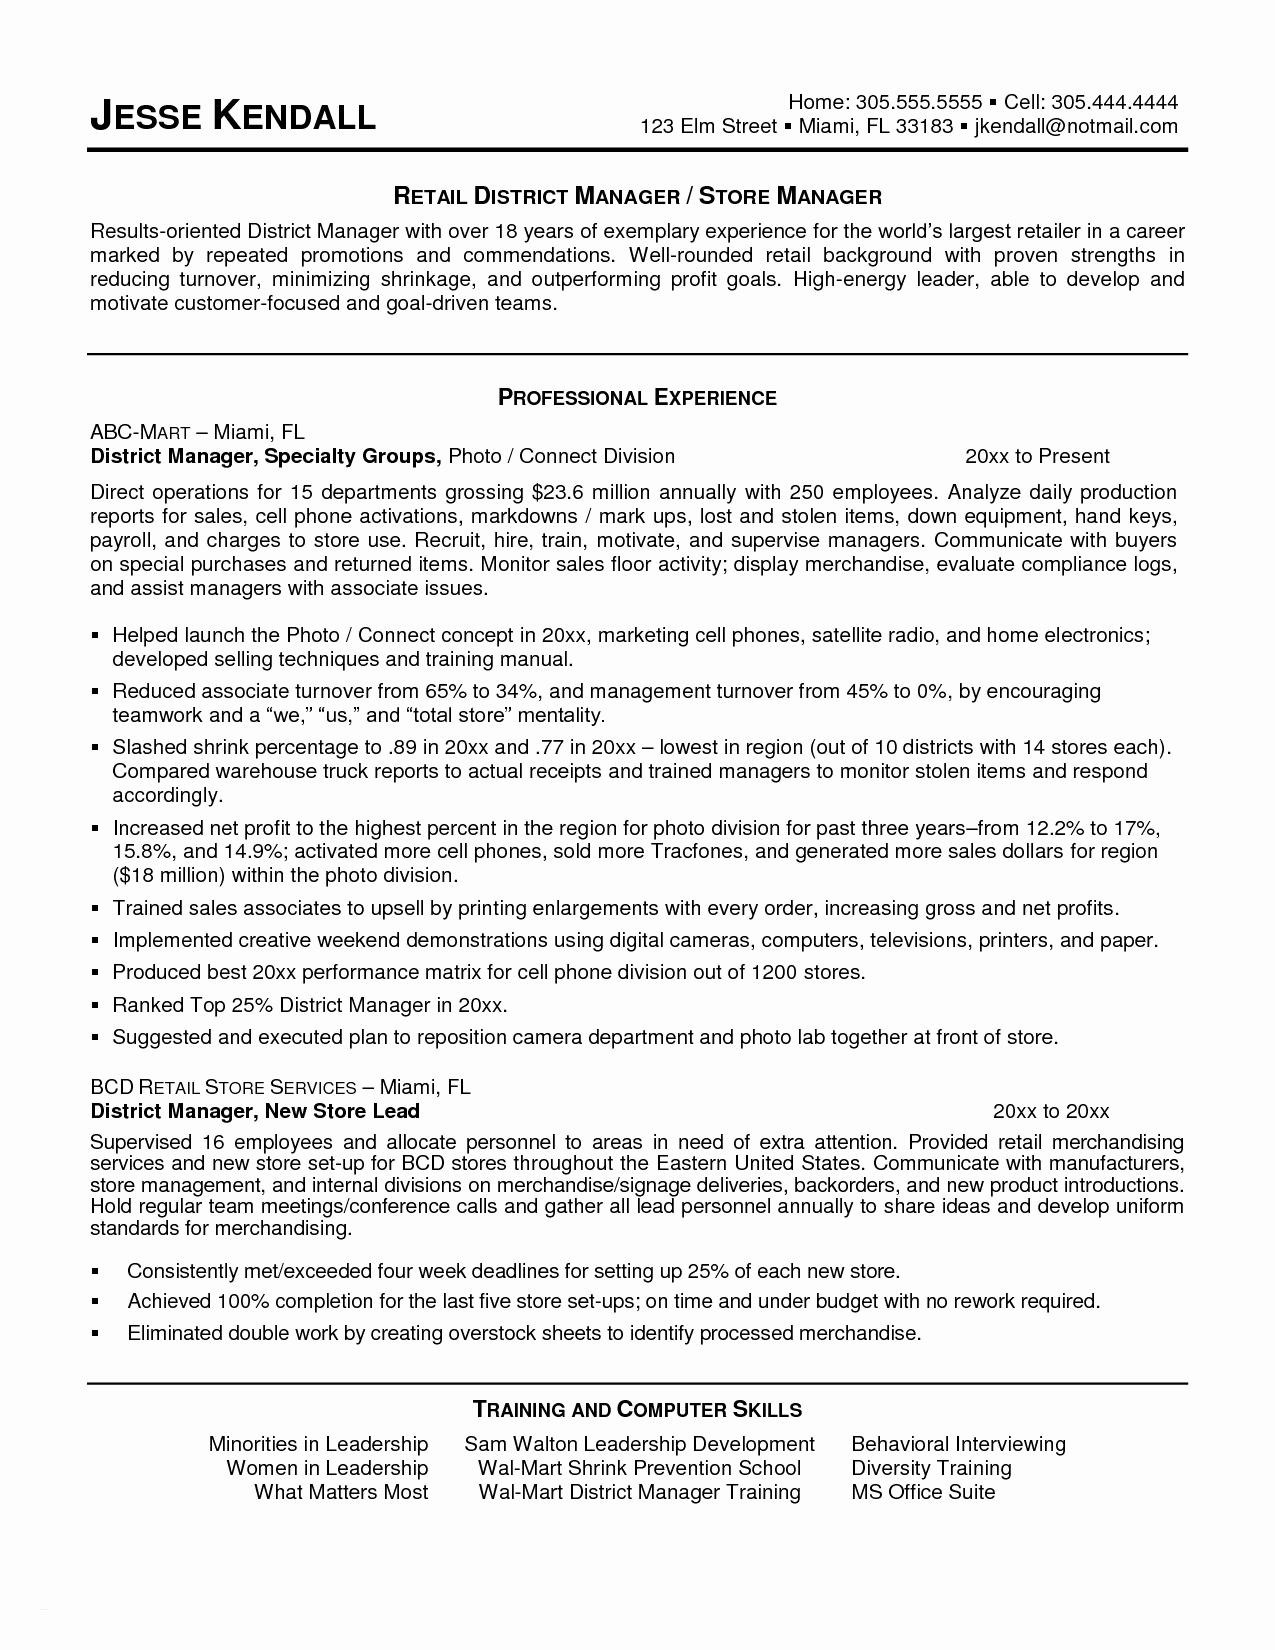 Retail Resume No Experience Sample